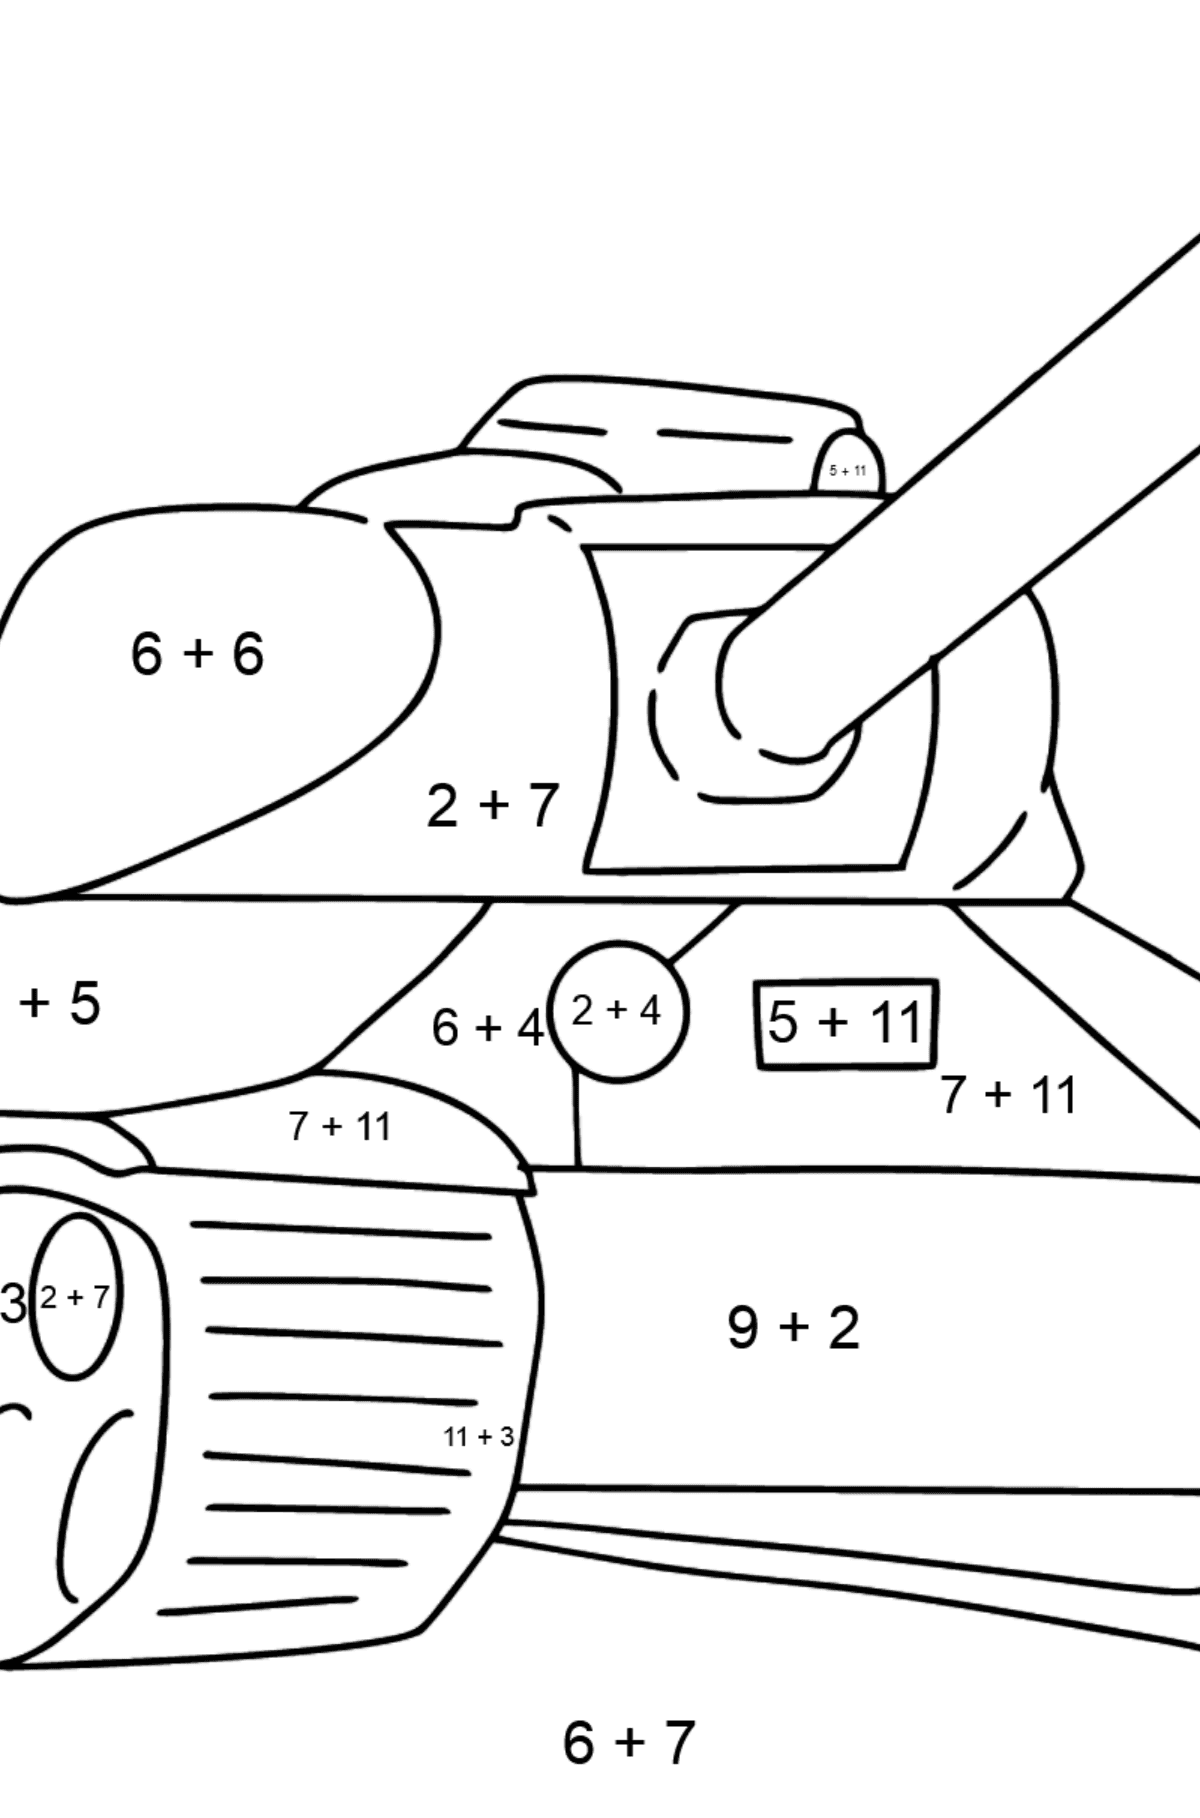 Tank IS 2 coloring page - Math Coloring - Addition for Kids